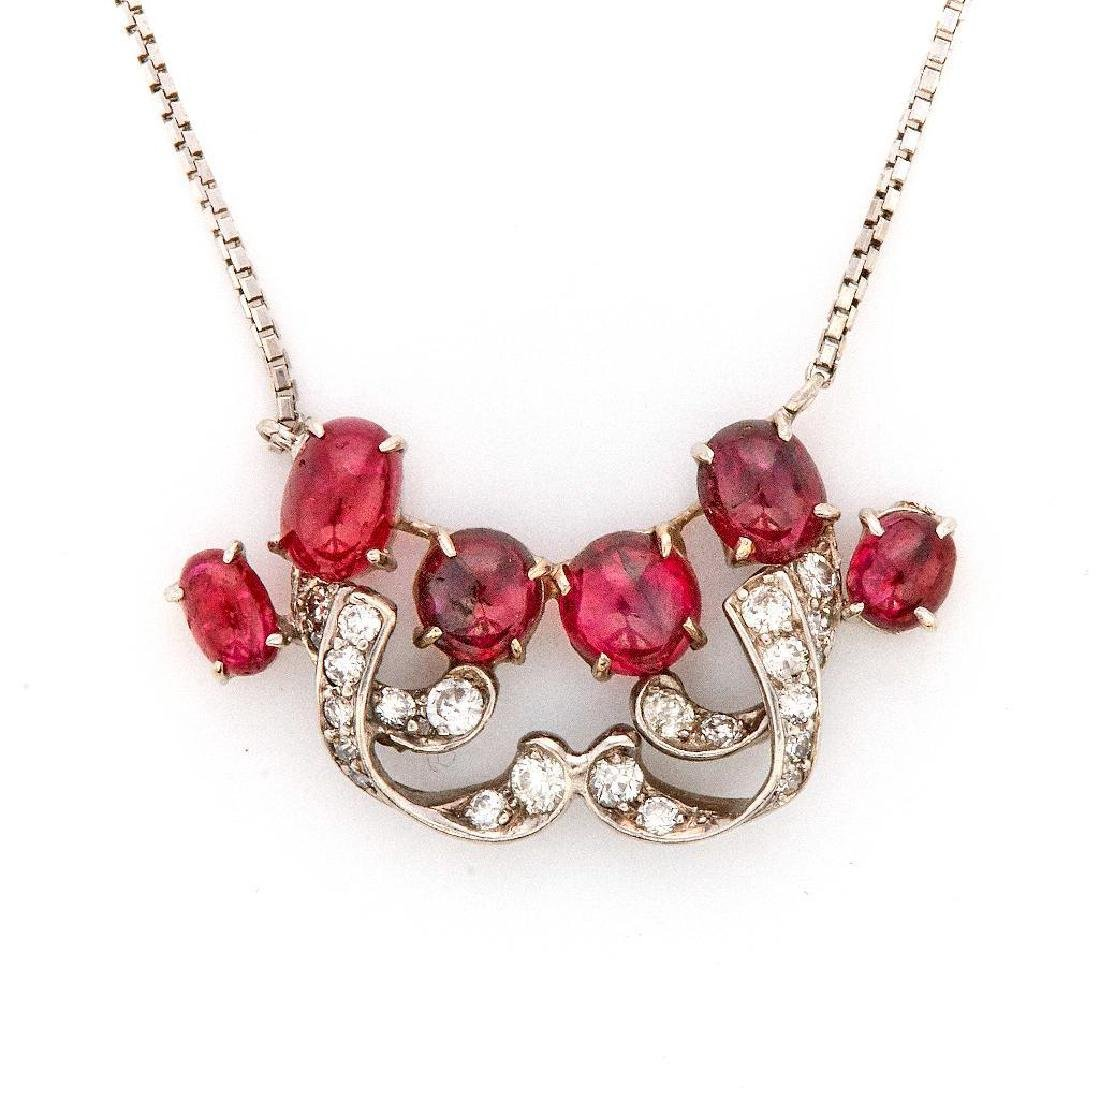 Ruby, diamond, platinum and 14k white gold necklace